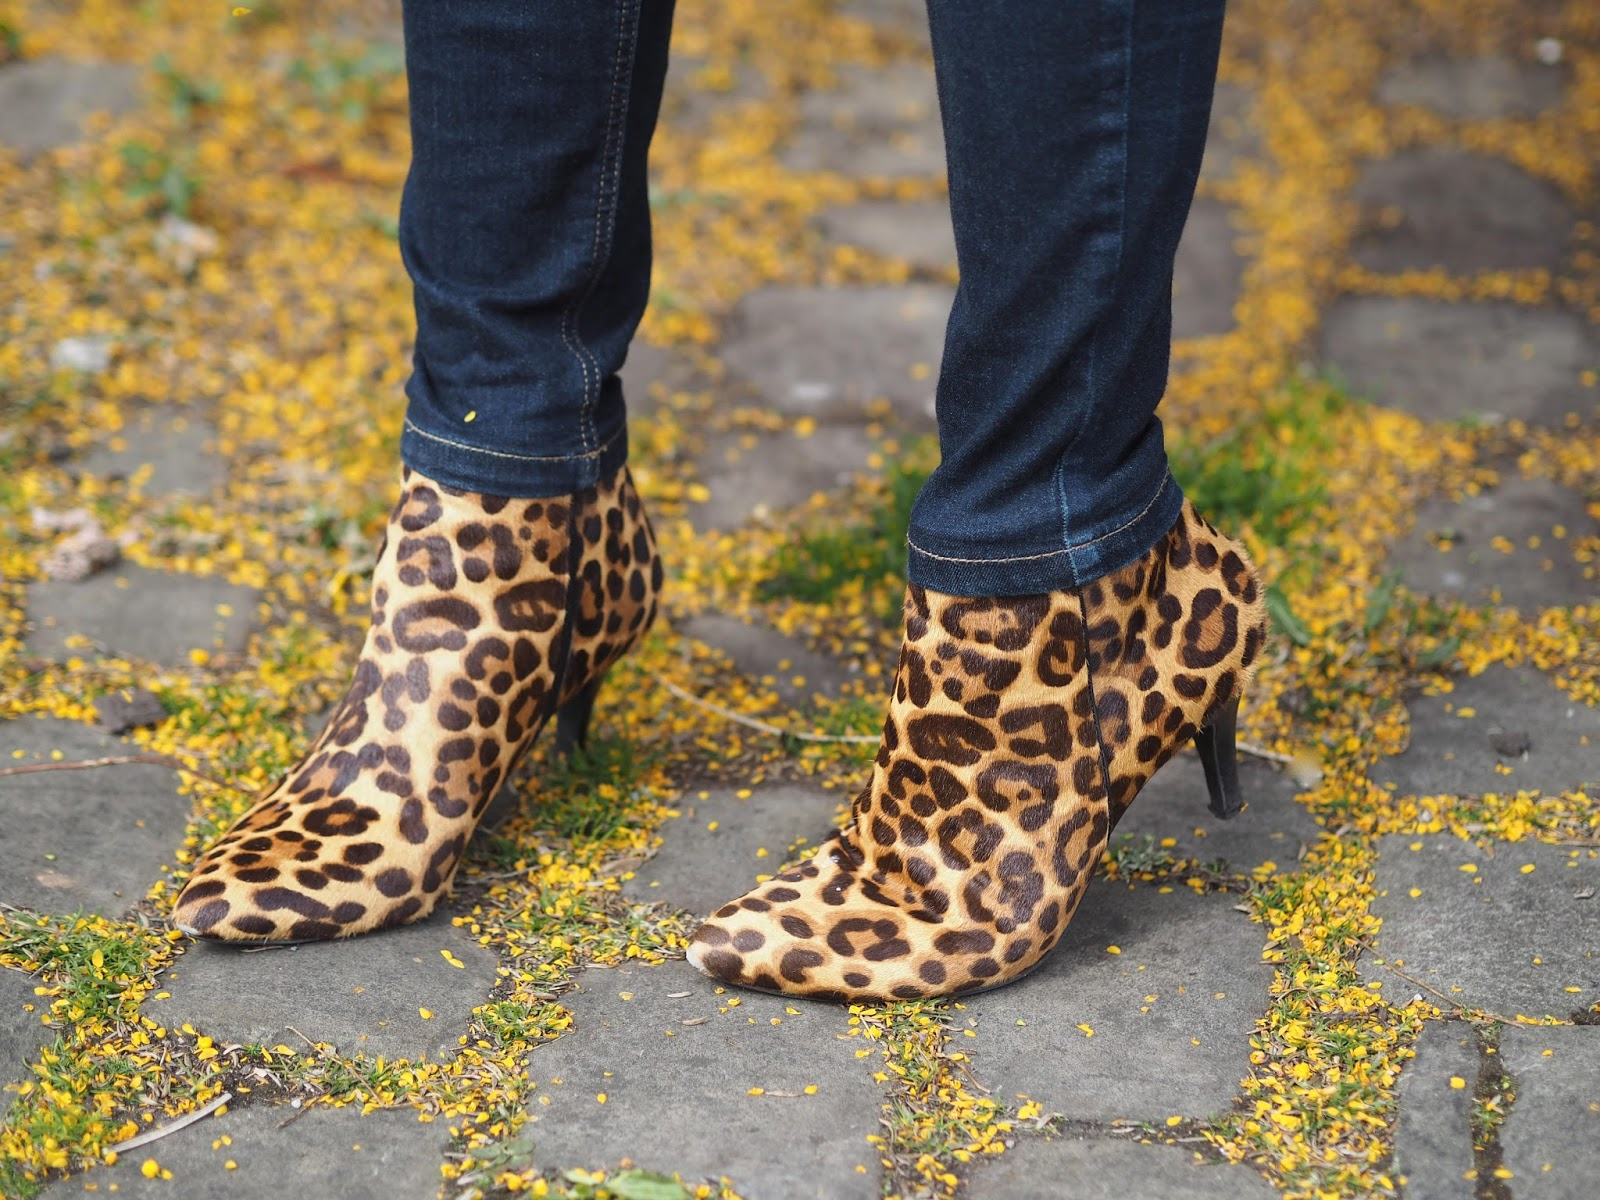 Bluma Leopard print high heeled boots by Lotus